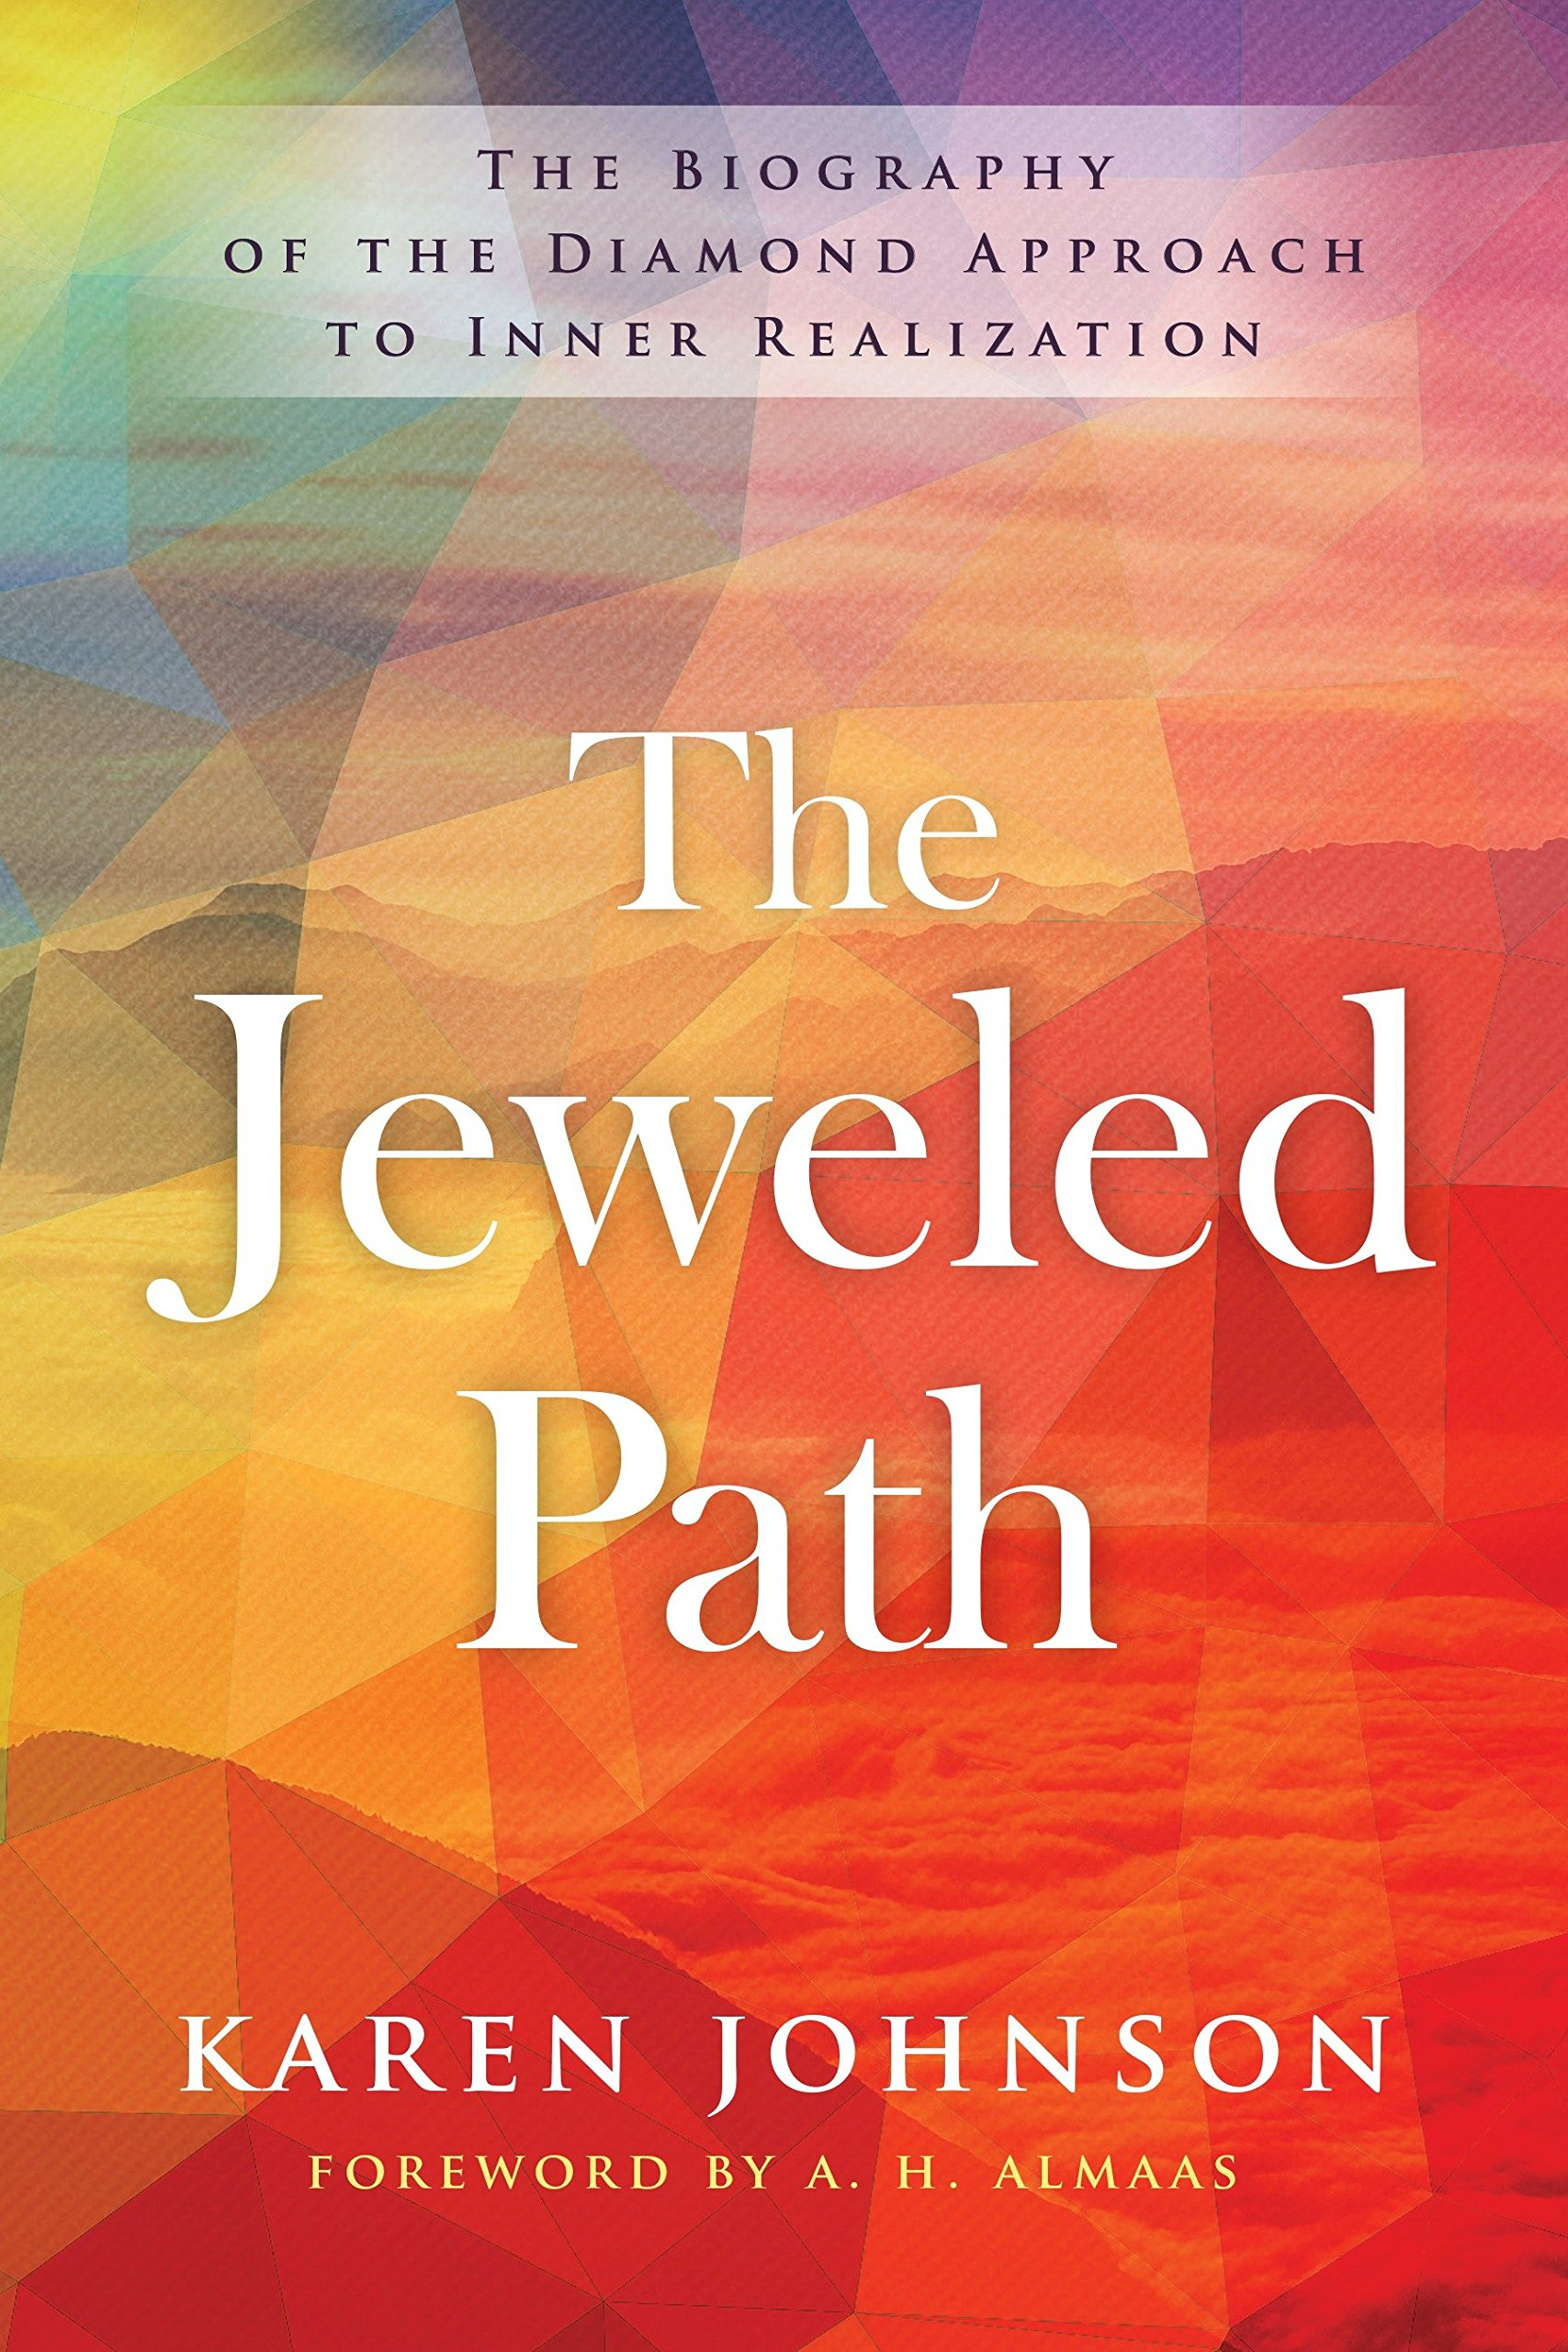 approach path johnson karen dp amazon the realization inner jeweled almaas a h to biography of ca l books diamond